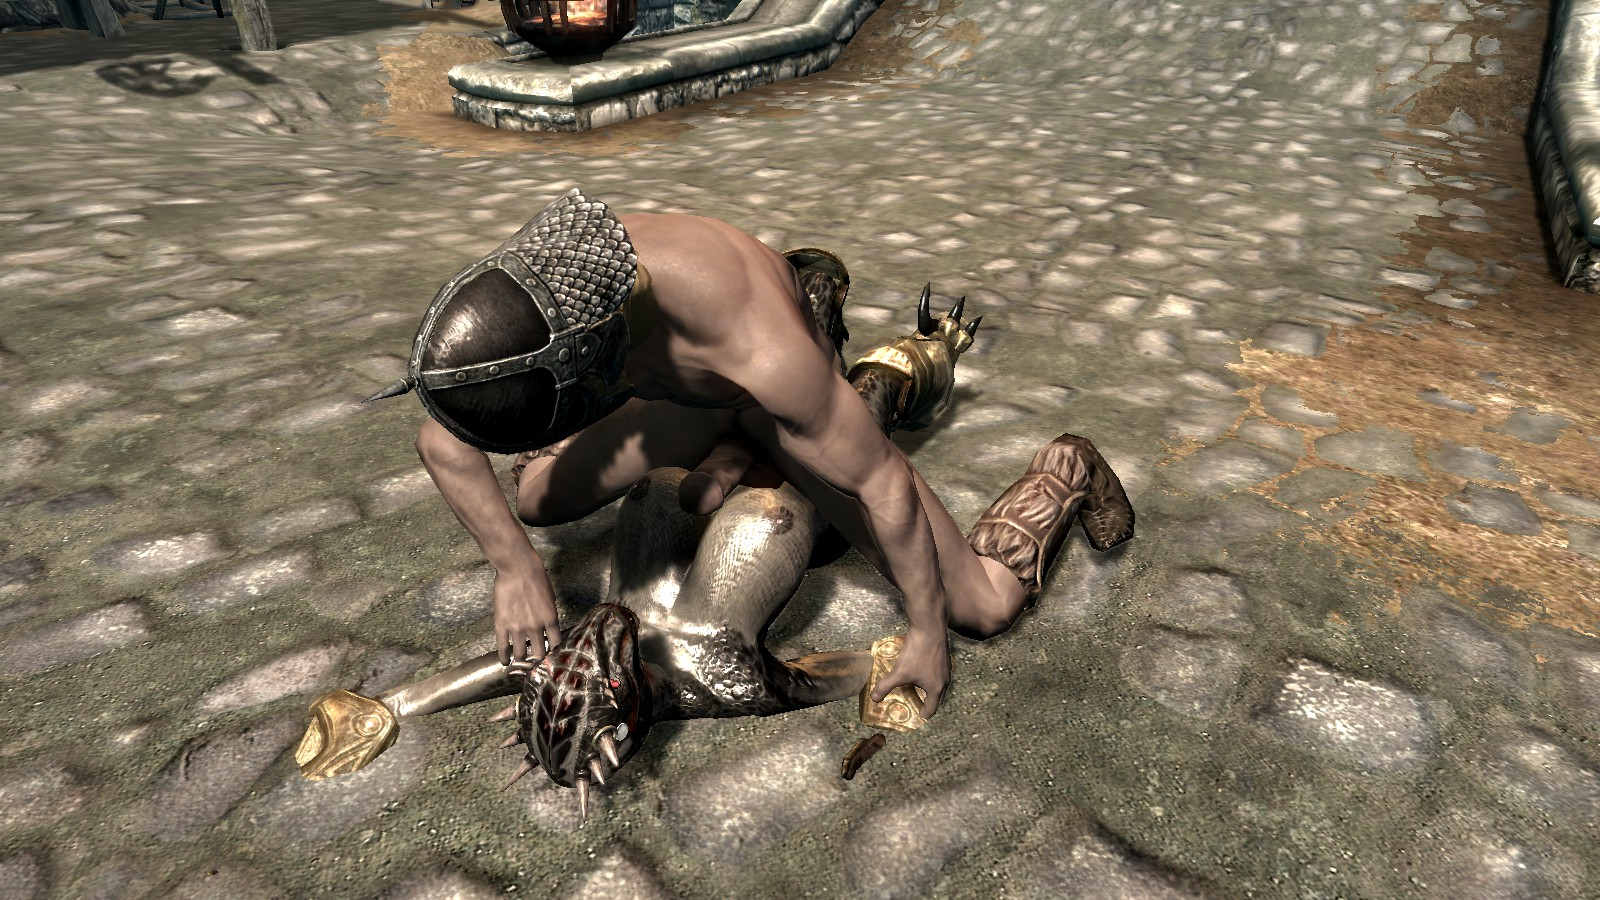 The elder scrolls sex mod exposed sexi teen